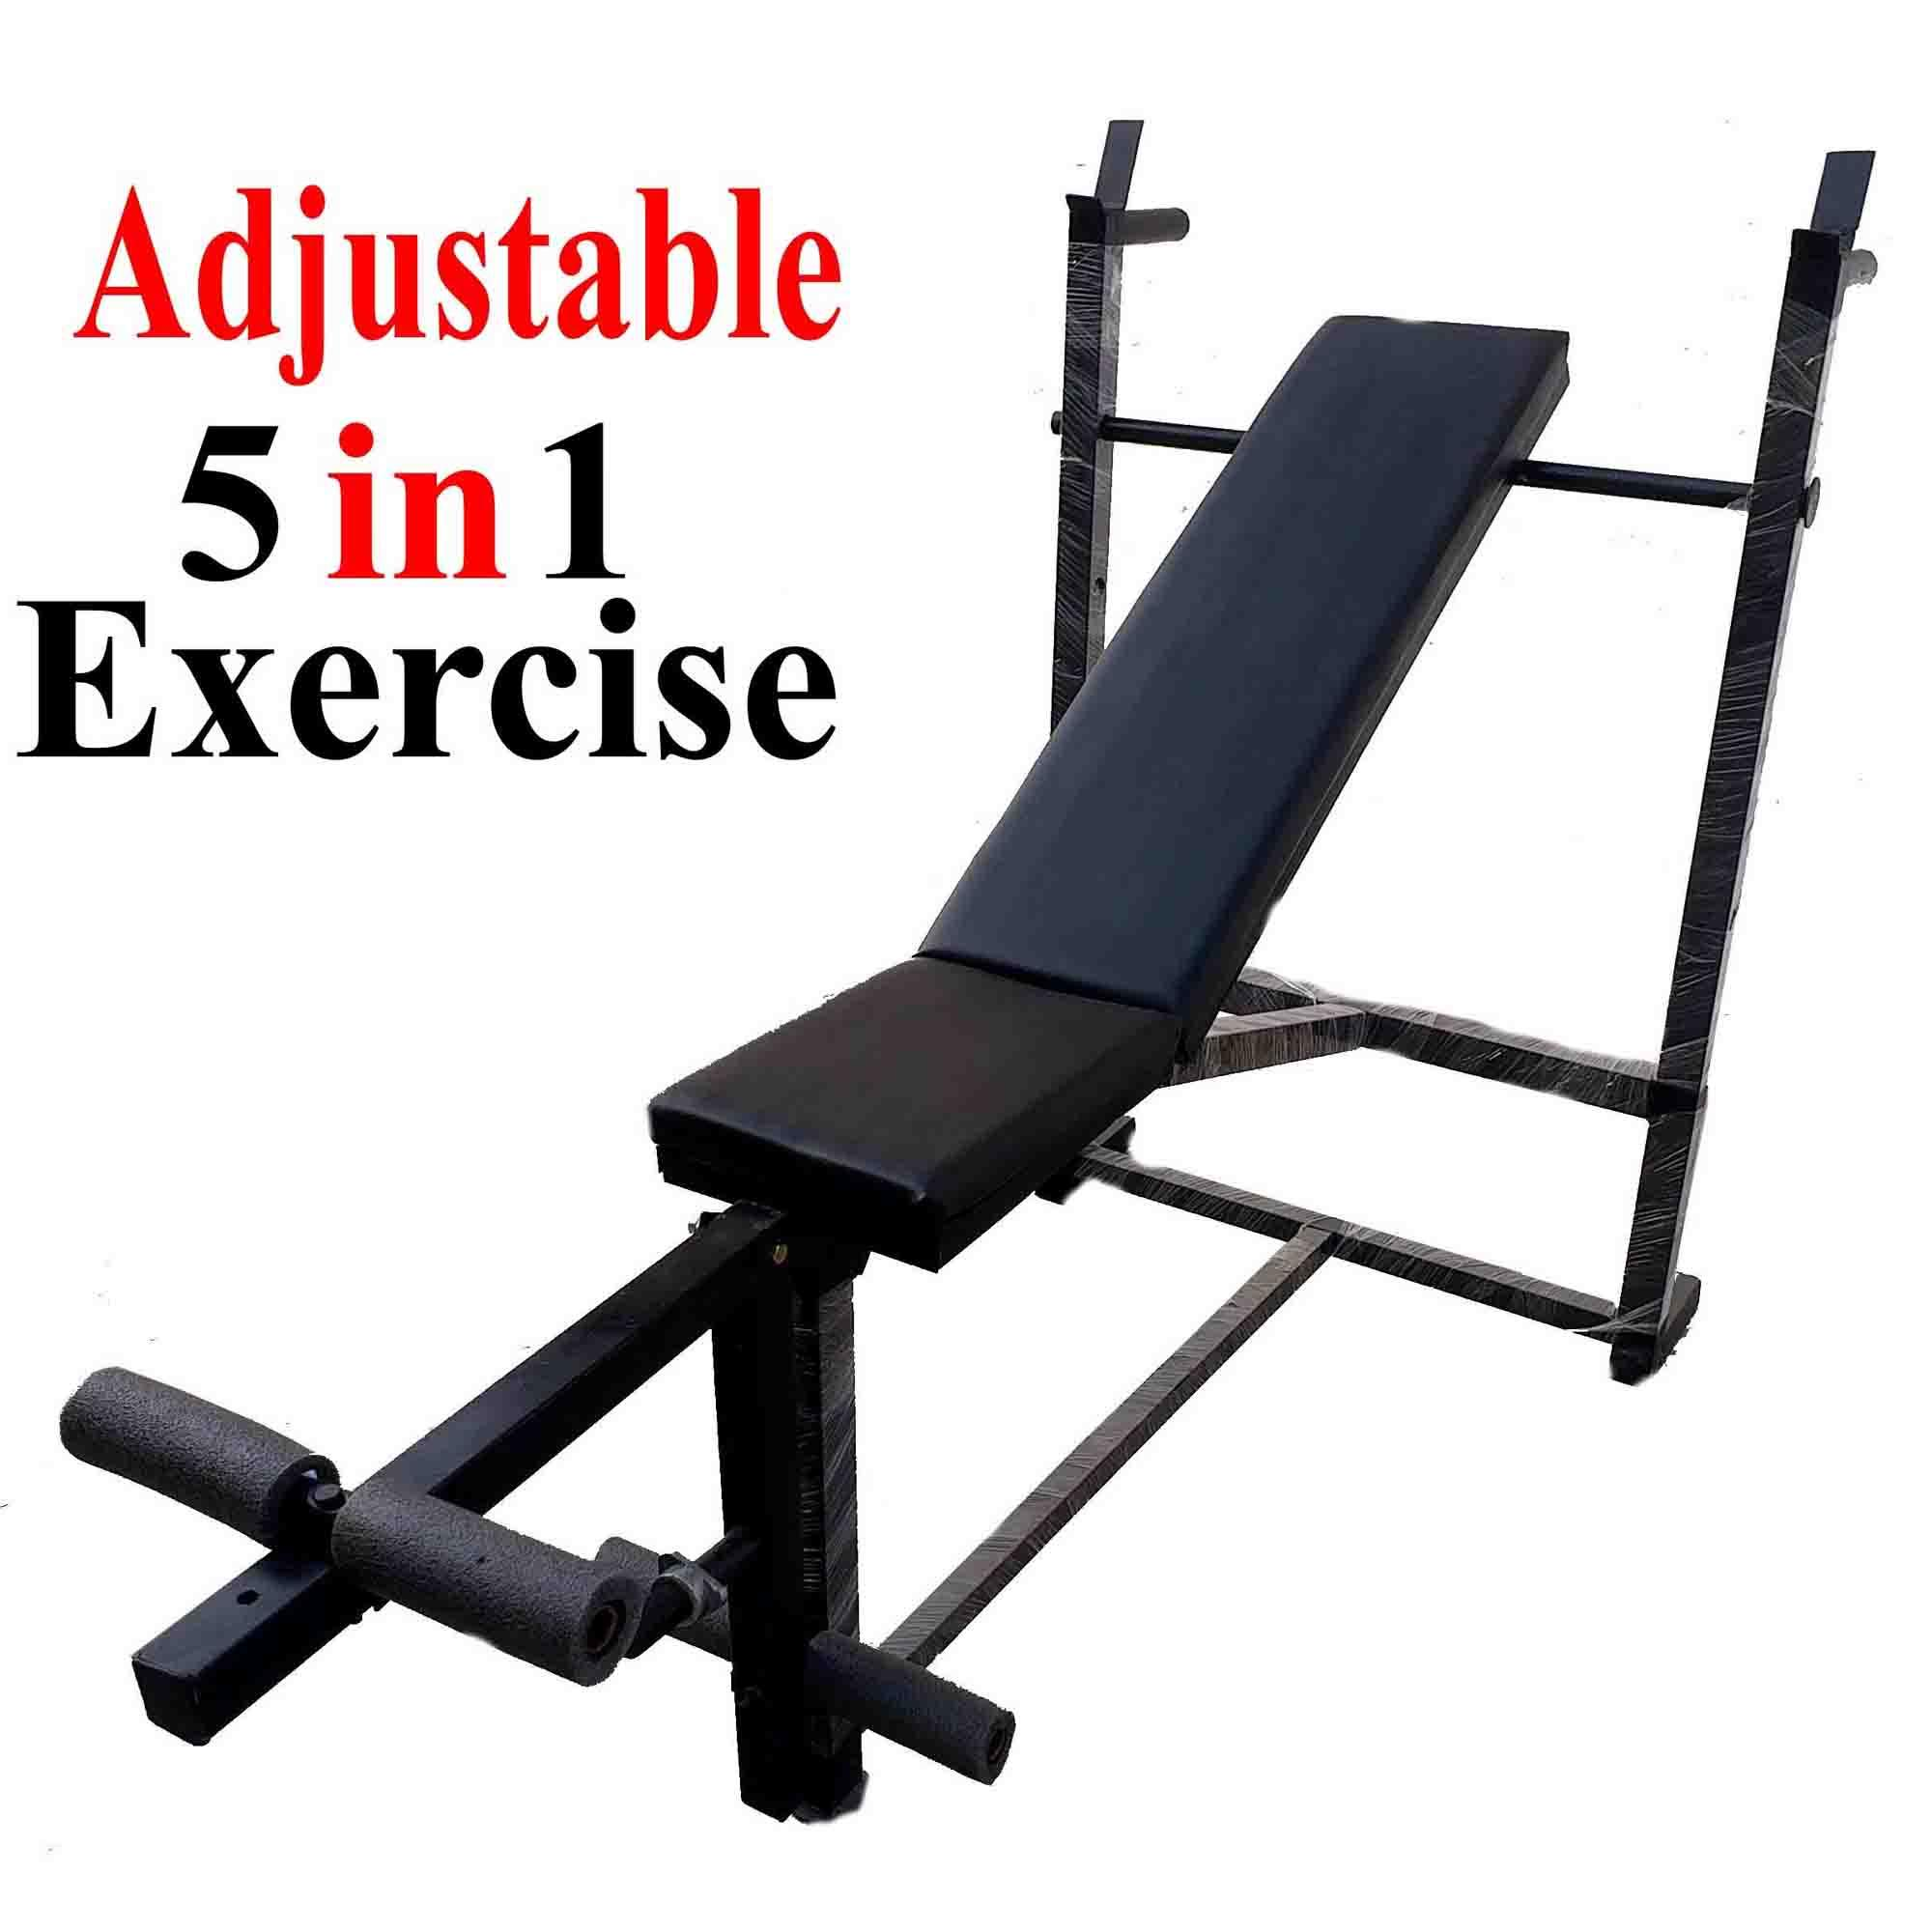 5 Exercise Adjustable Chest Bench Press Incline Decline Straight Leg Chest  Exercise Weight Lifting Body Building